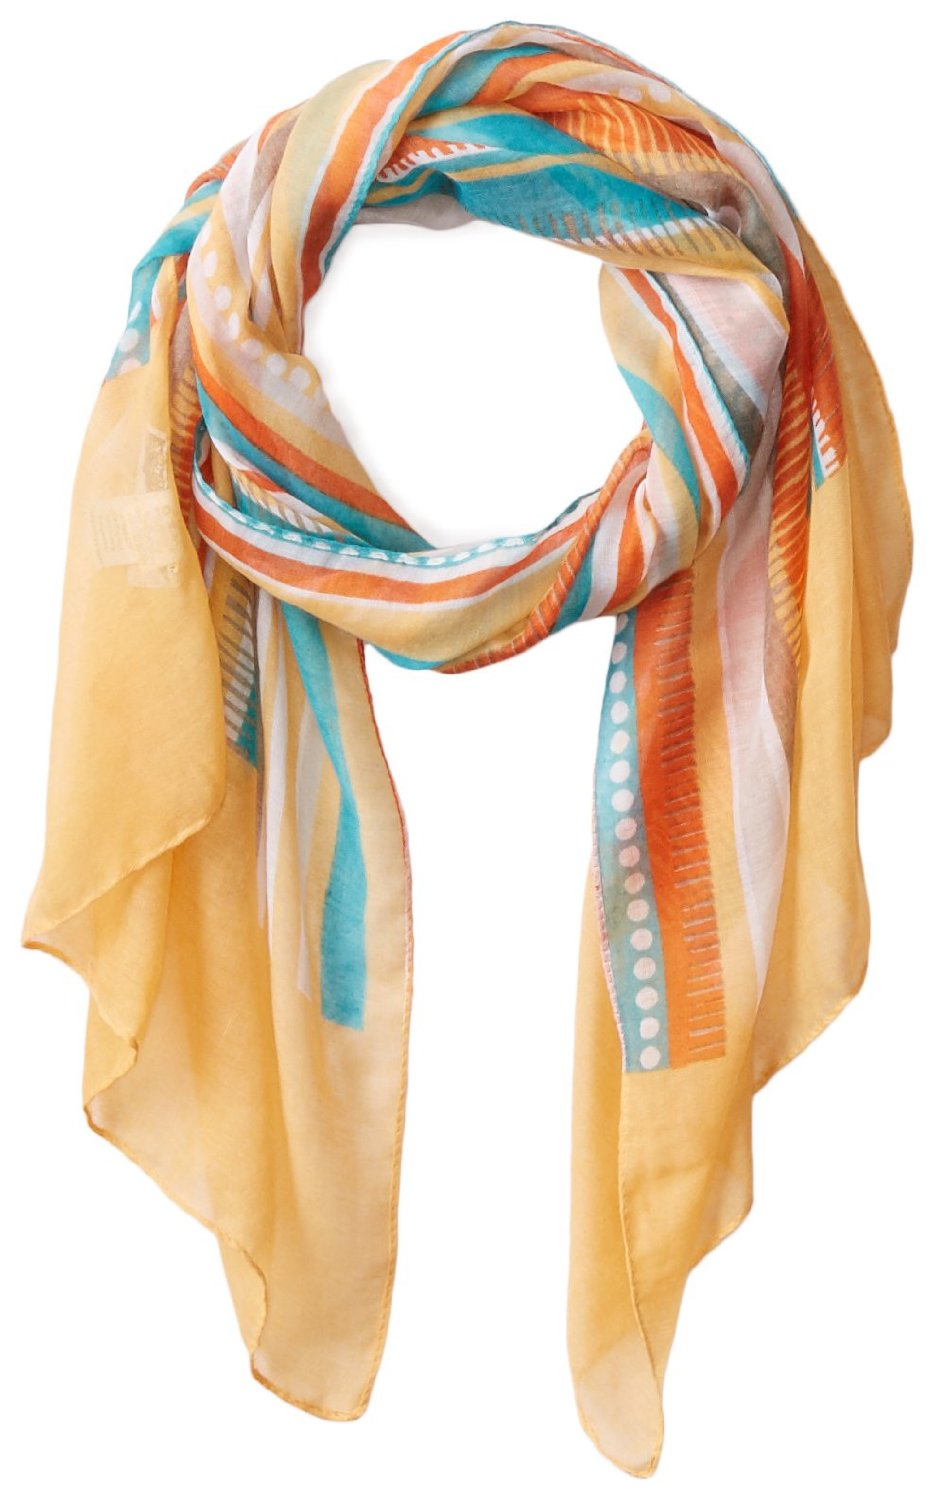 mosquito-repellent-clothing-scarf